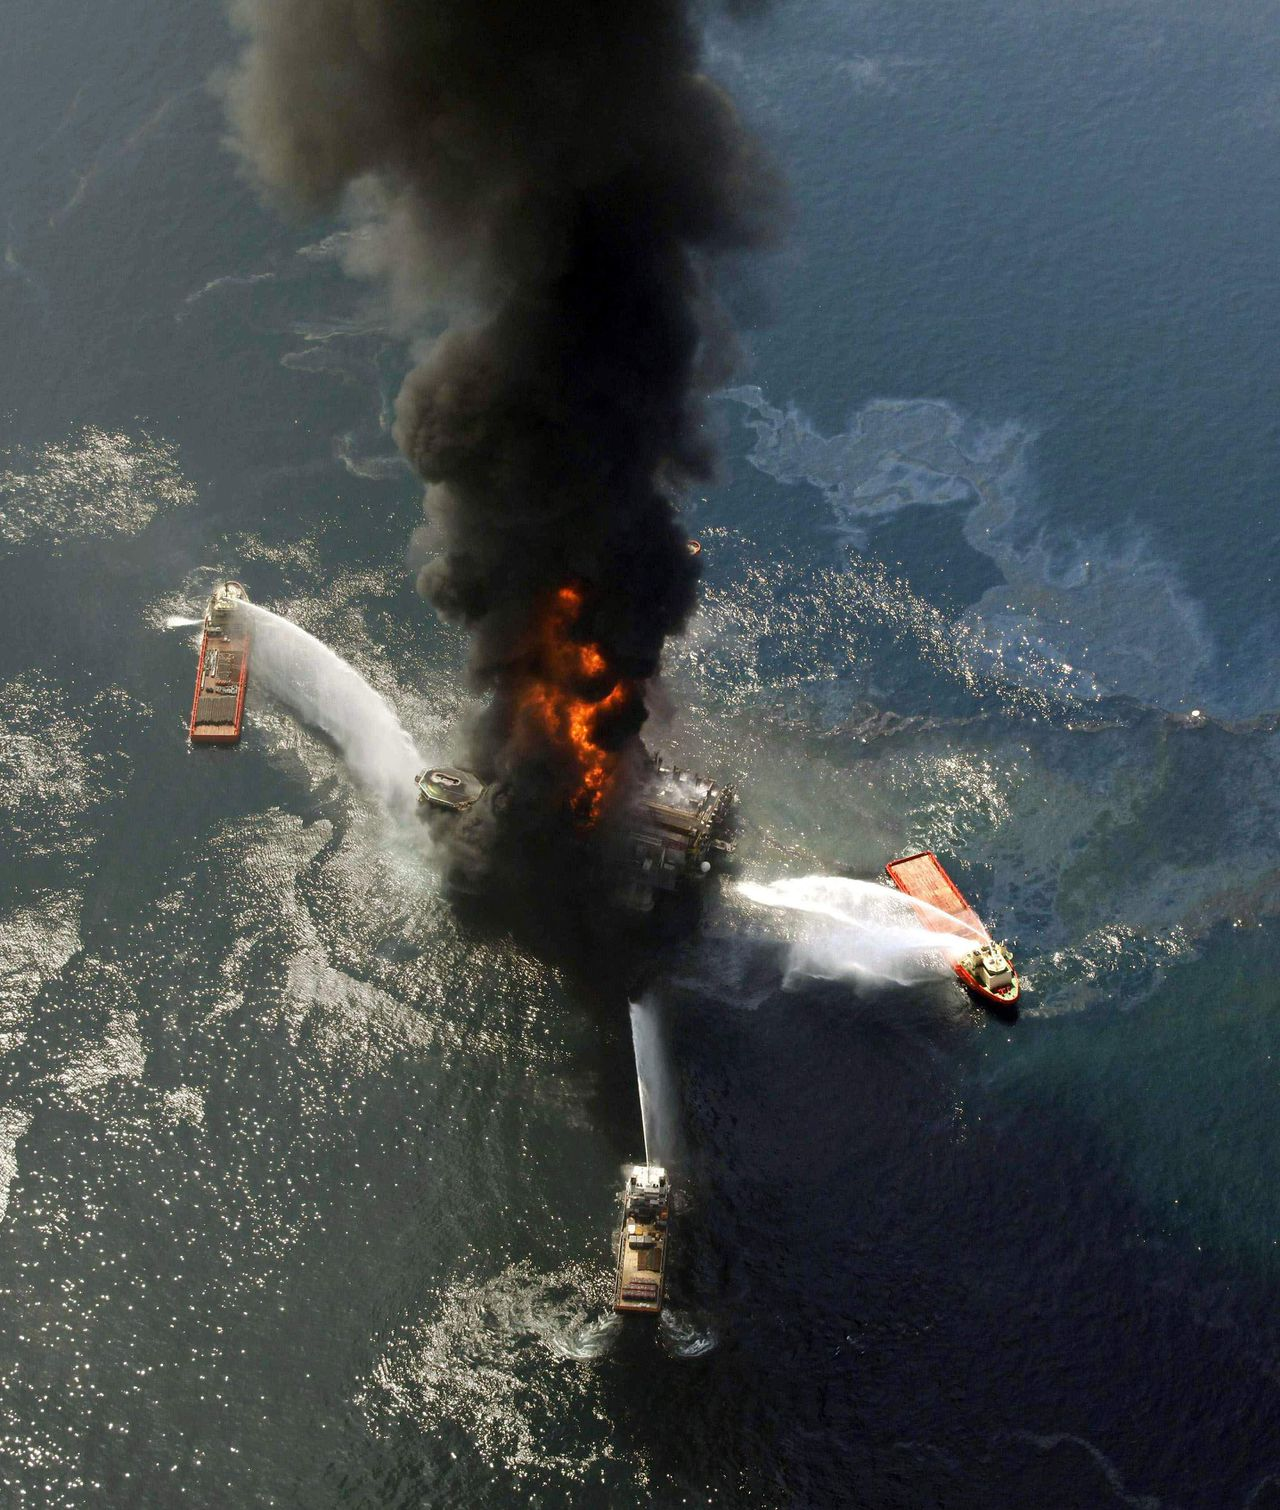 """De brand op 21 april op het olieplatform Deepwater Horizon. Foto AP FILE - This April 21, 2010, file photo show the Deepwater Horizon oil rig burning after an explosion in the Gulf of Mexico, off the southeast tip of Louisiana. In yet another failed attempt, this time called """"Top Kill"""", a high-tech nation threw brute mass, old tools and golf balls at the oil gushing from the ocean floor, like blast from past. (AP Photo/Gerald Herbert, File)"""